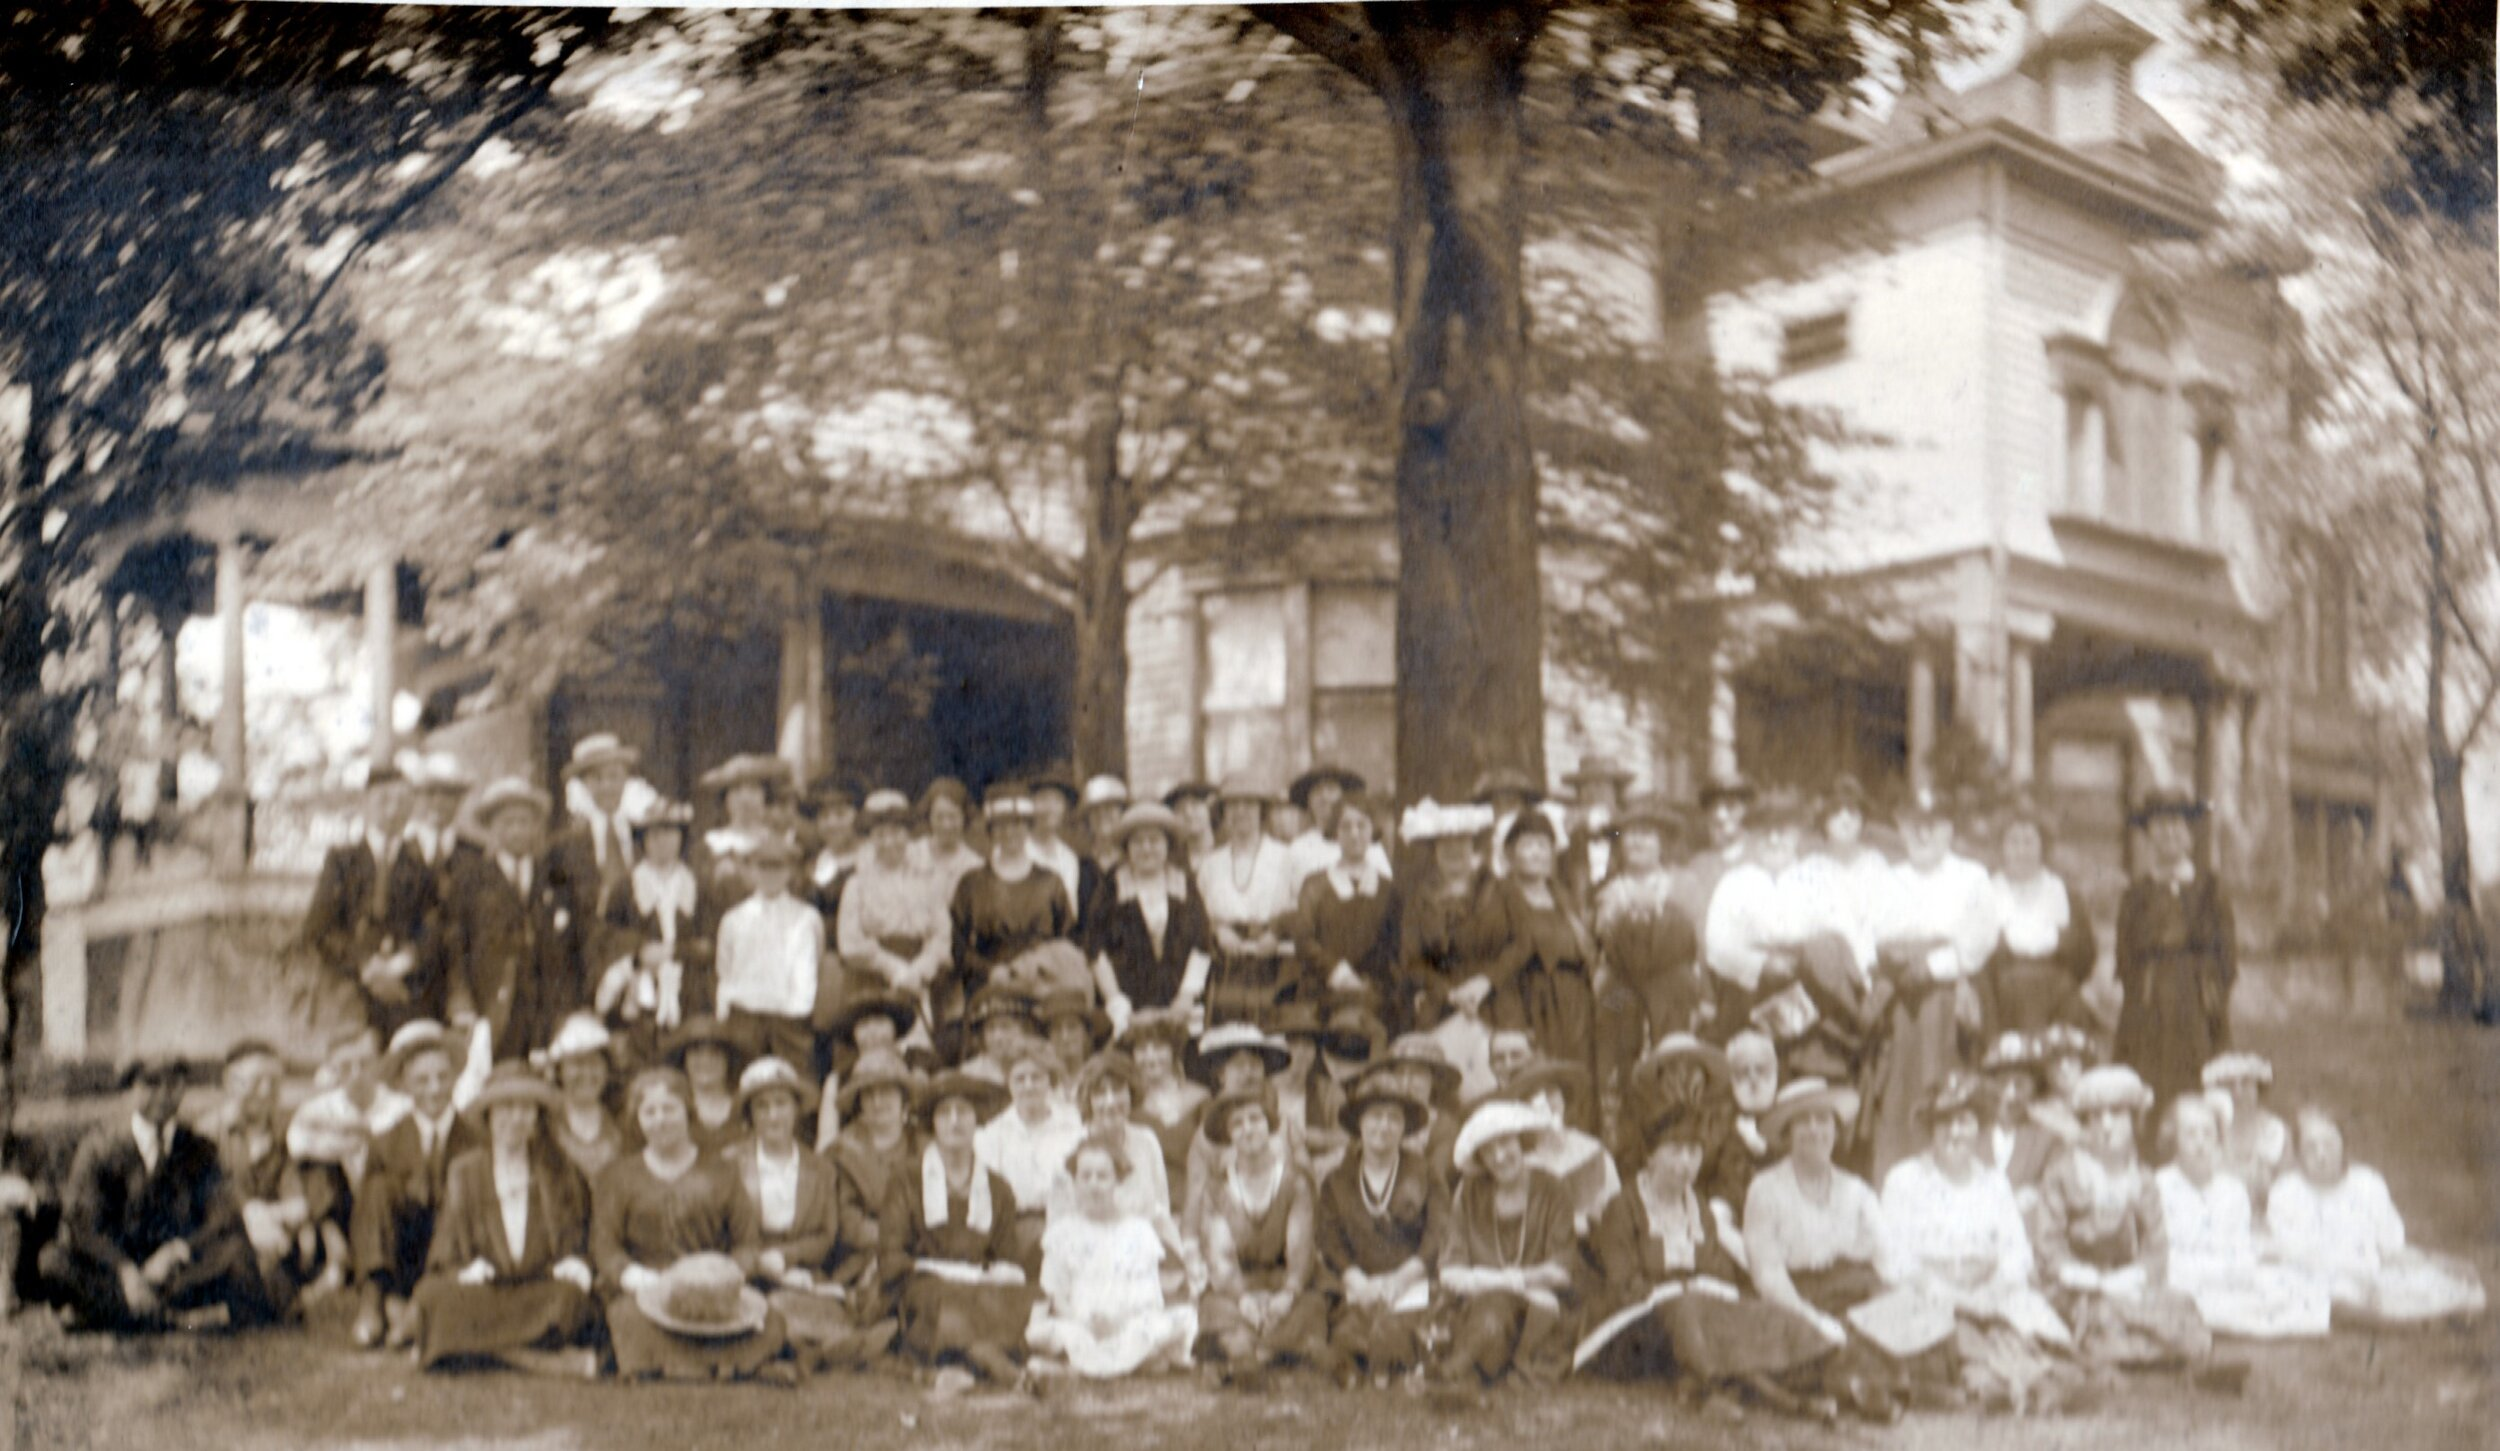 A pilgrimage group in front of the old monastery in 1920